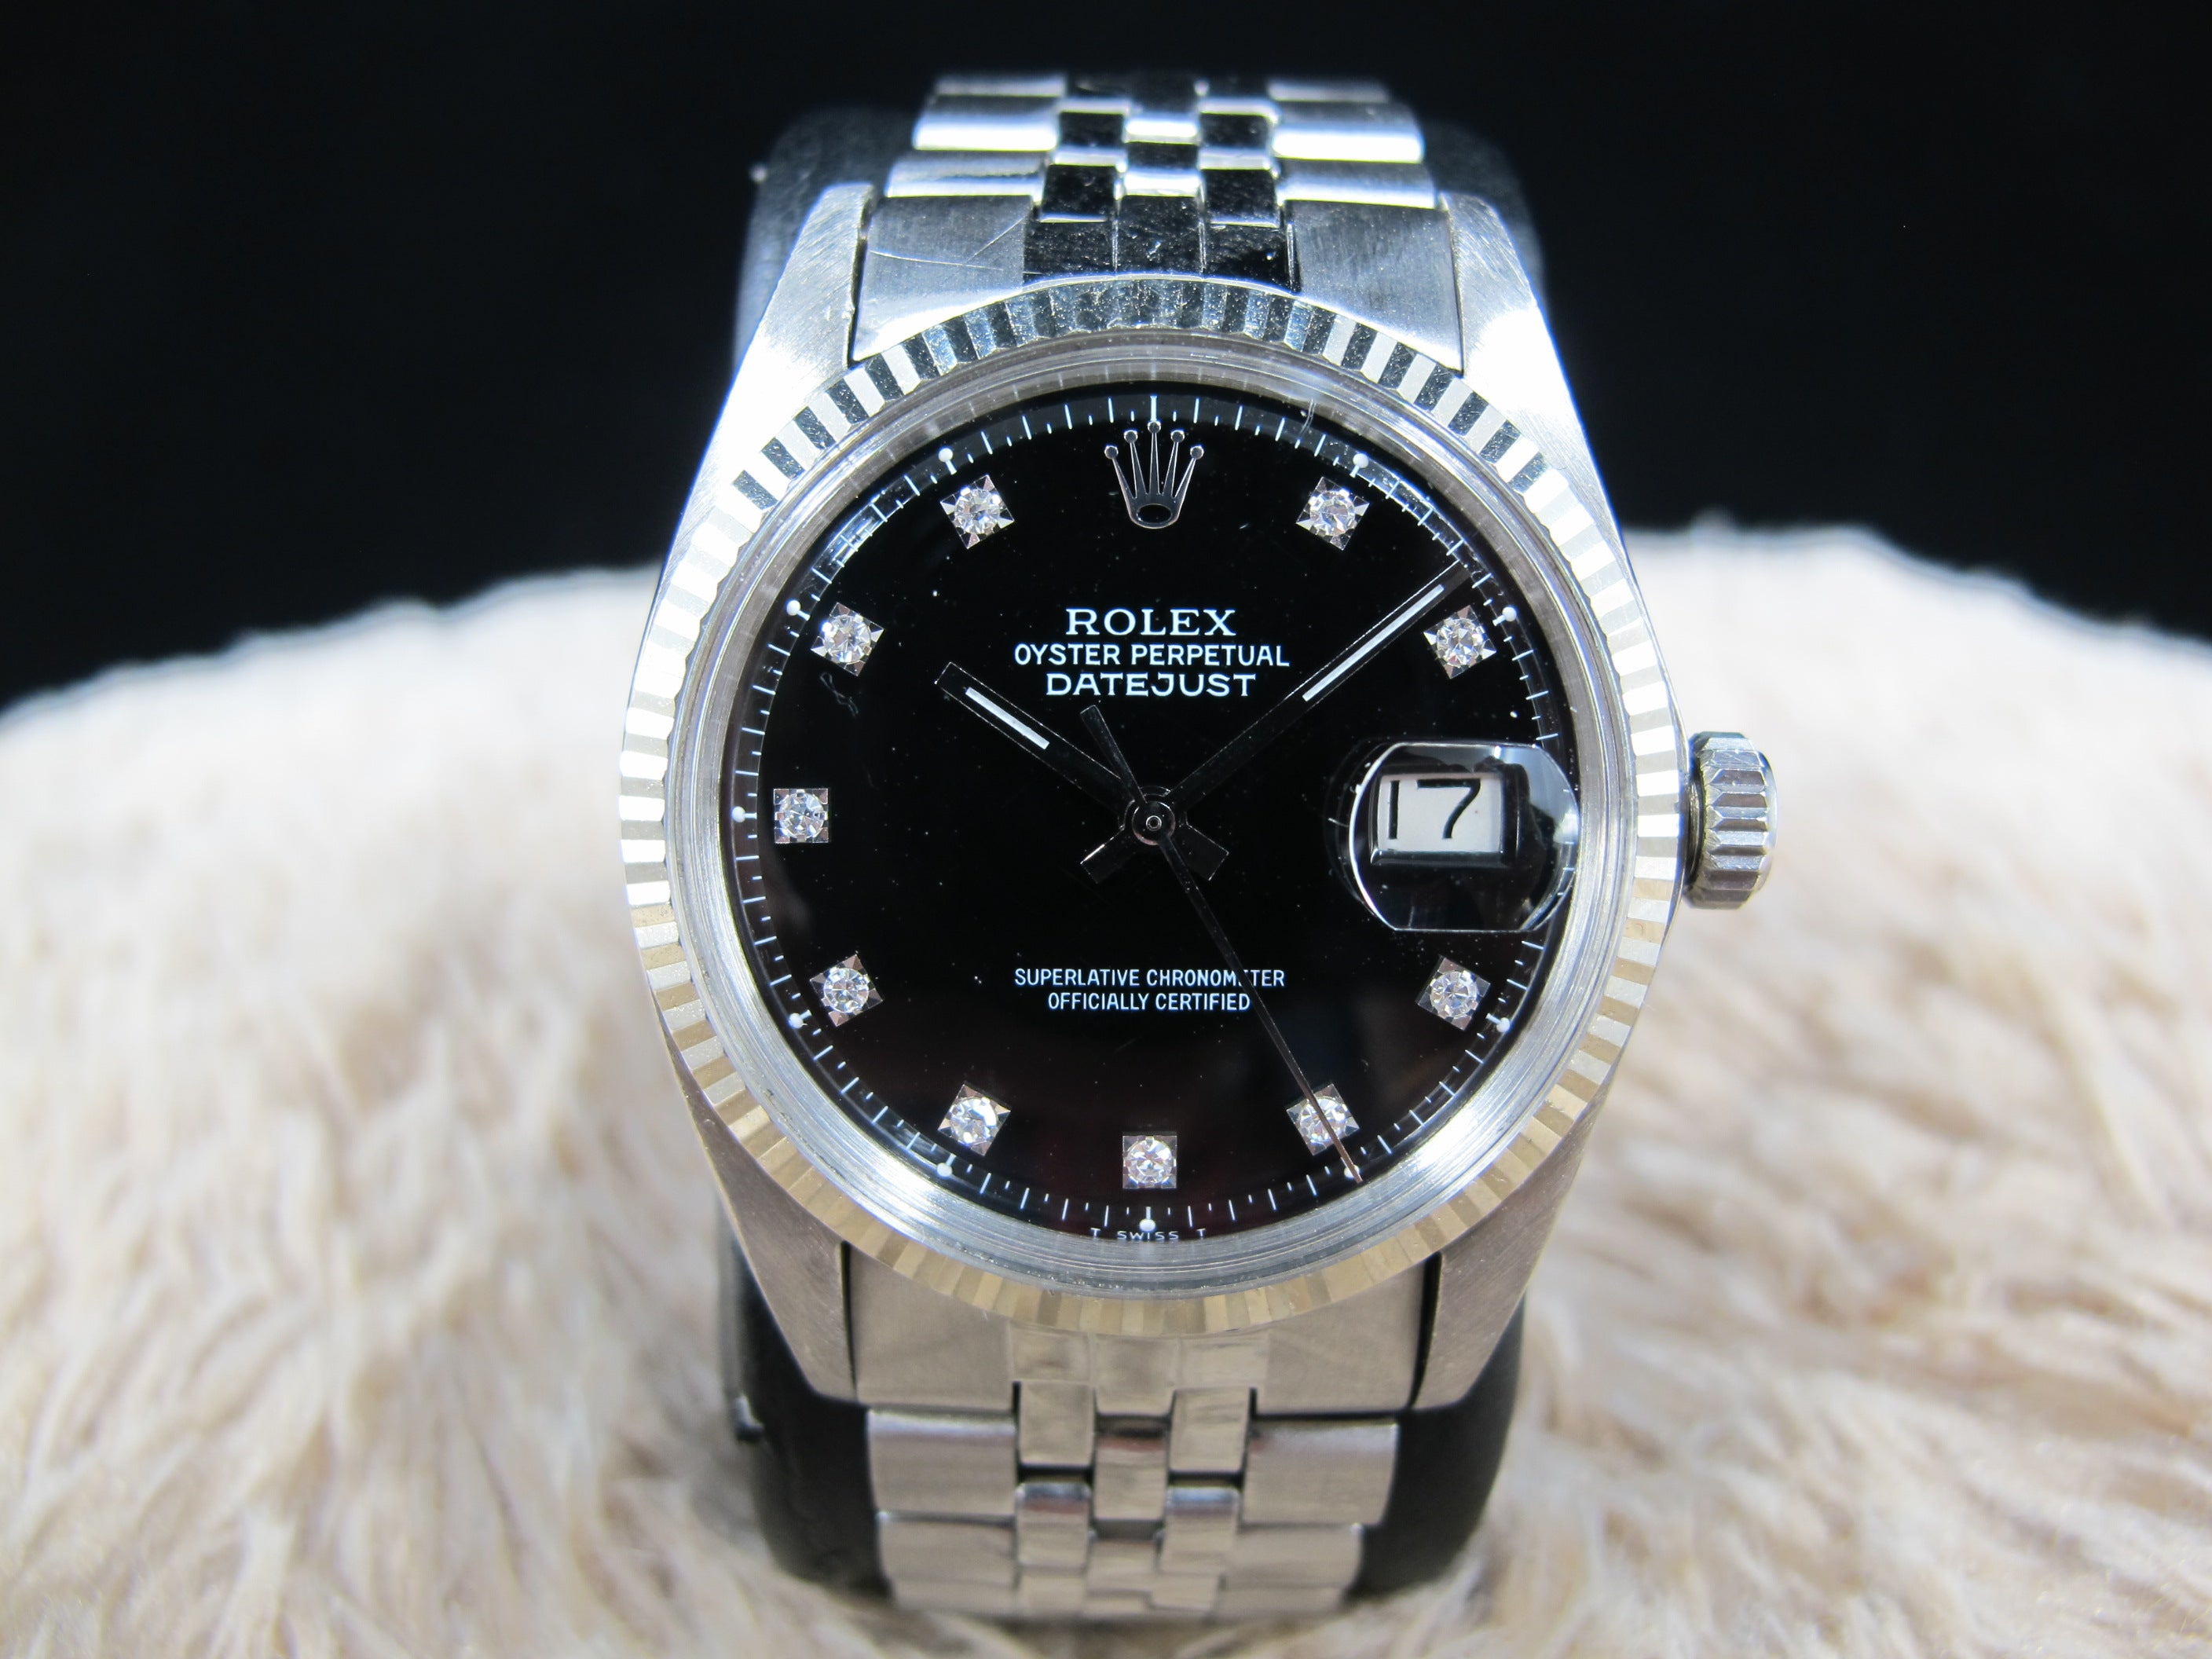 1969 Rolex DATEJUST 1601 SS Black Diamond Dial with Folded Jubilee